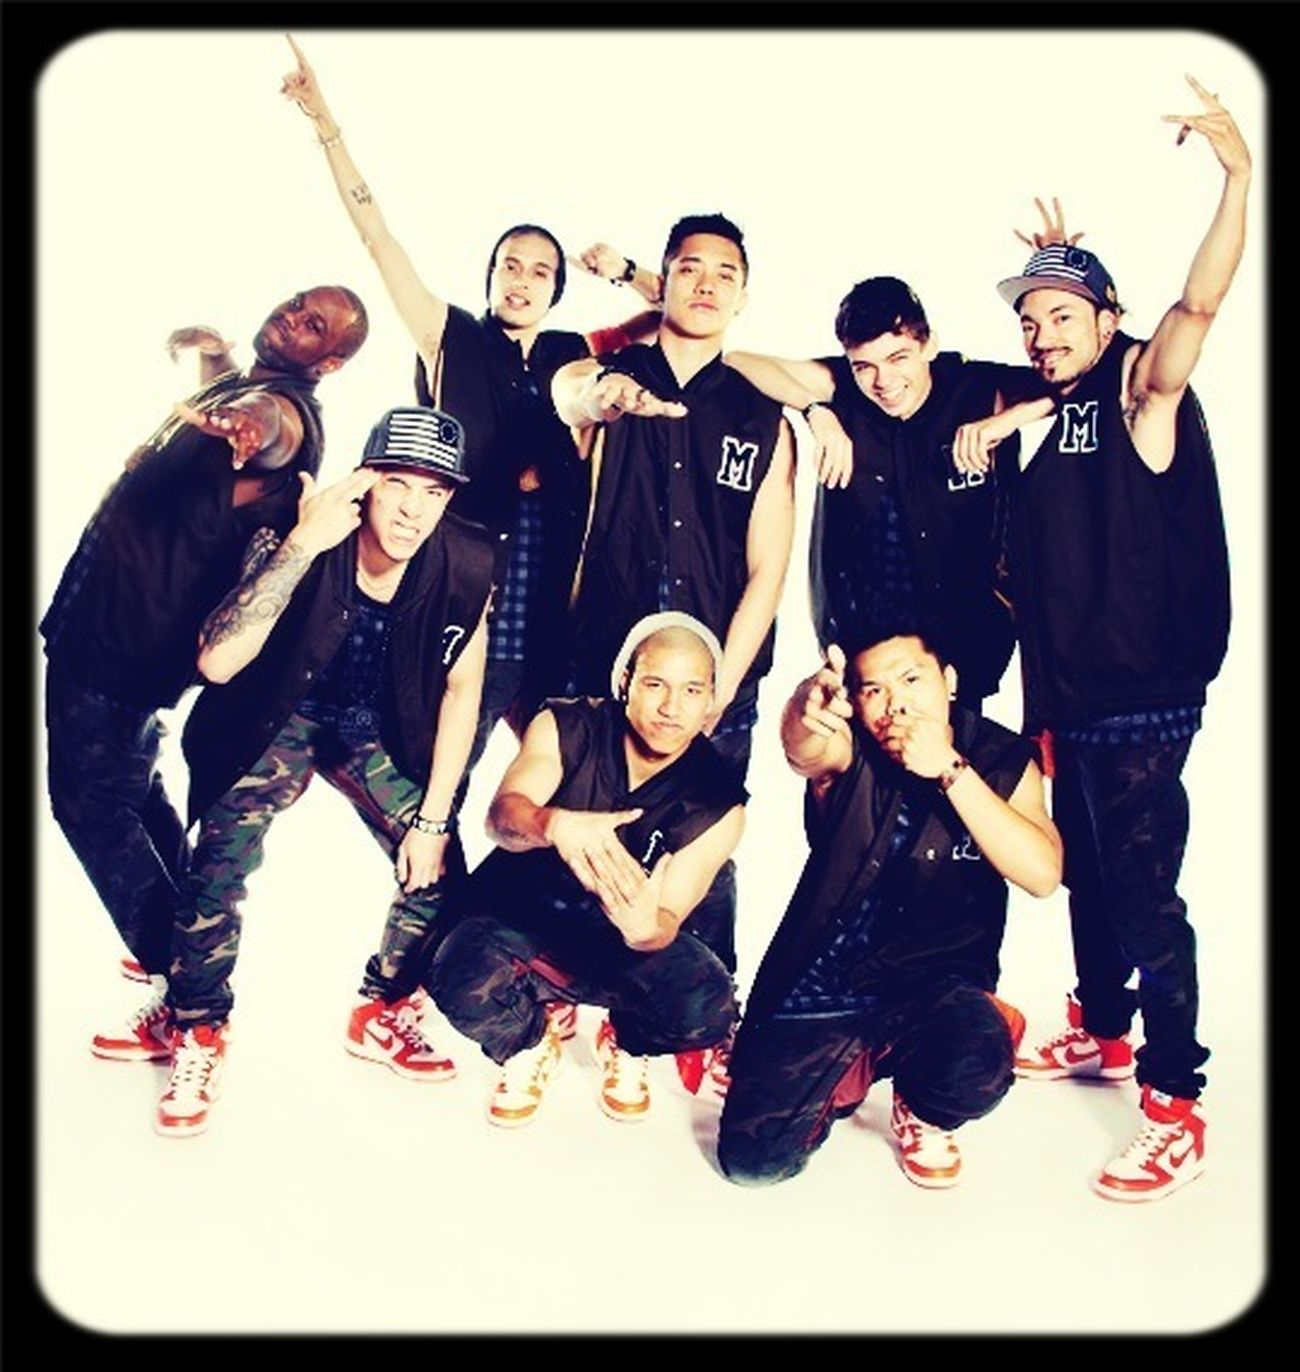 Favorite Dance Crew